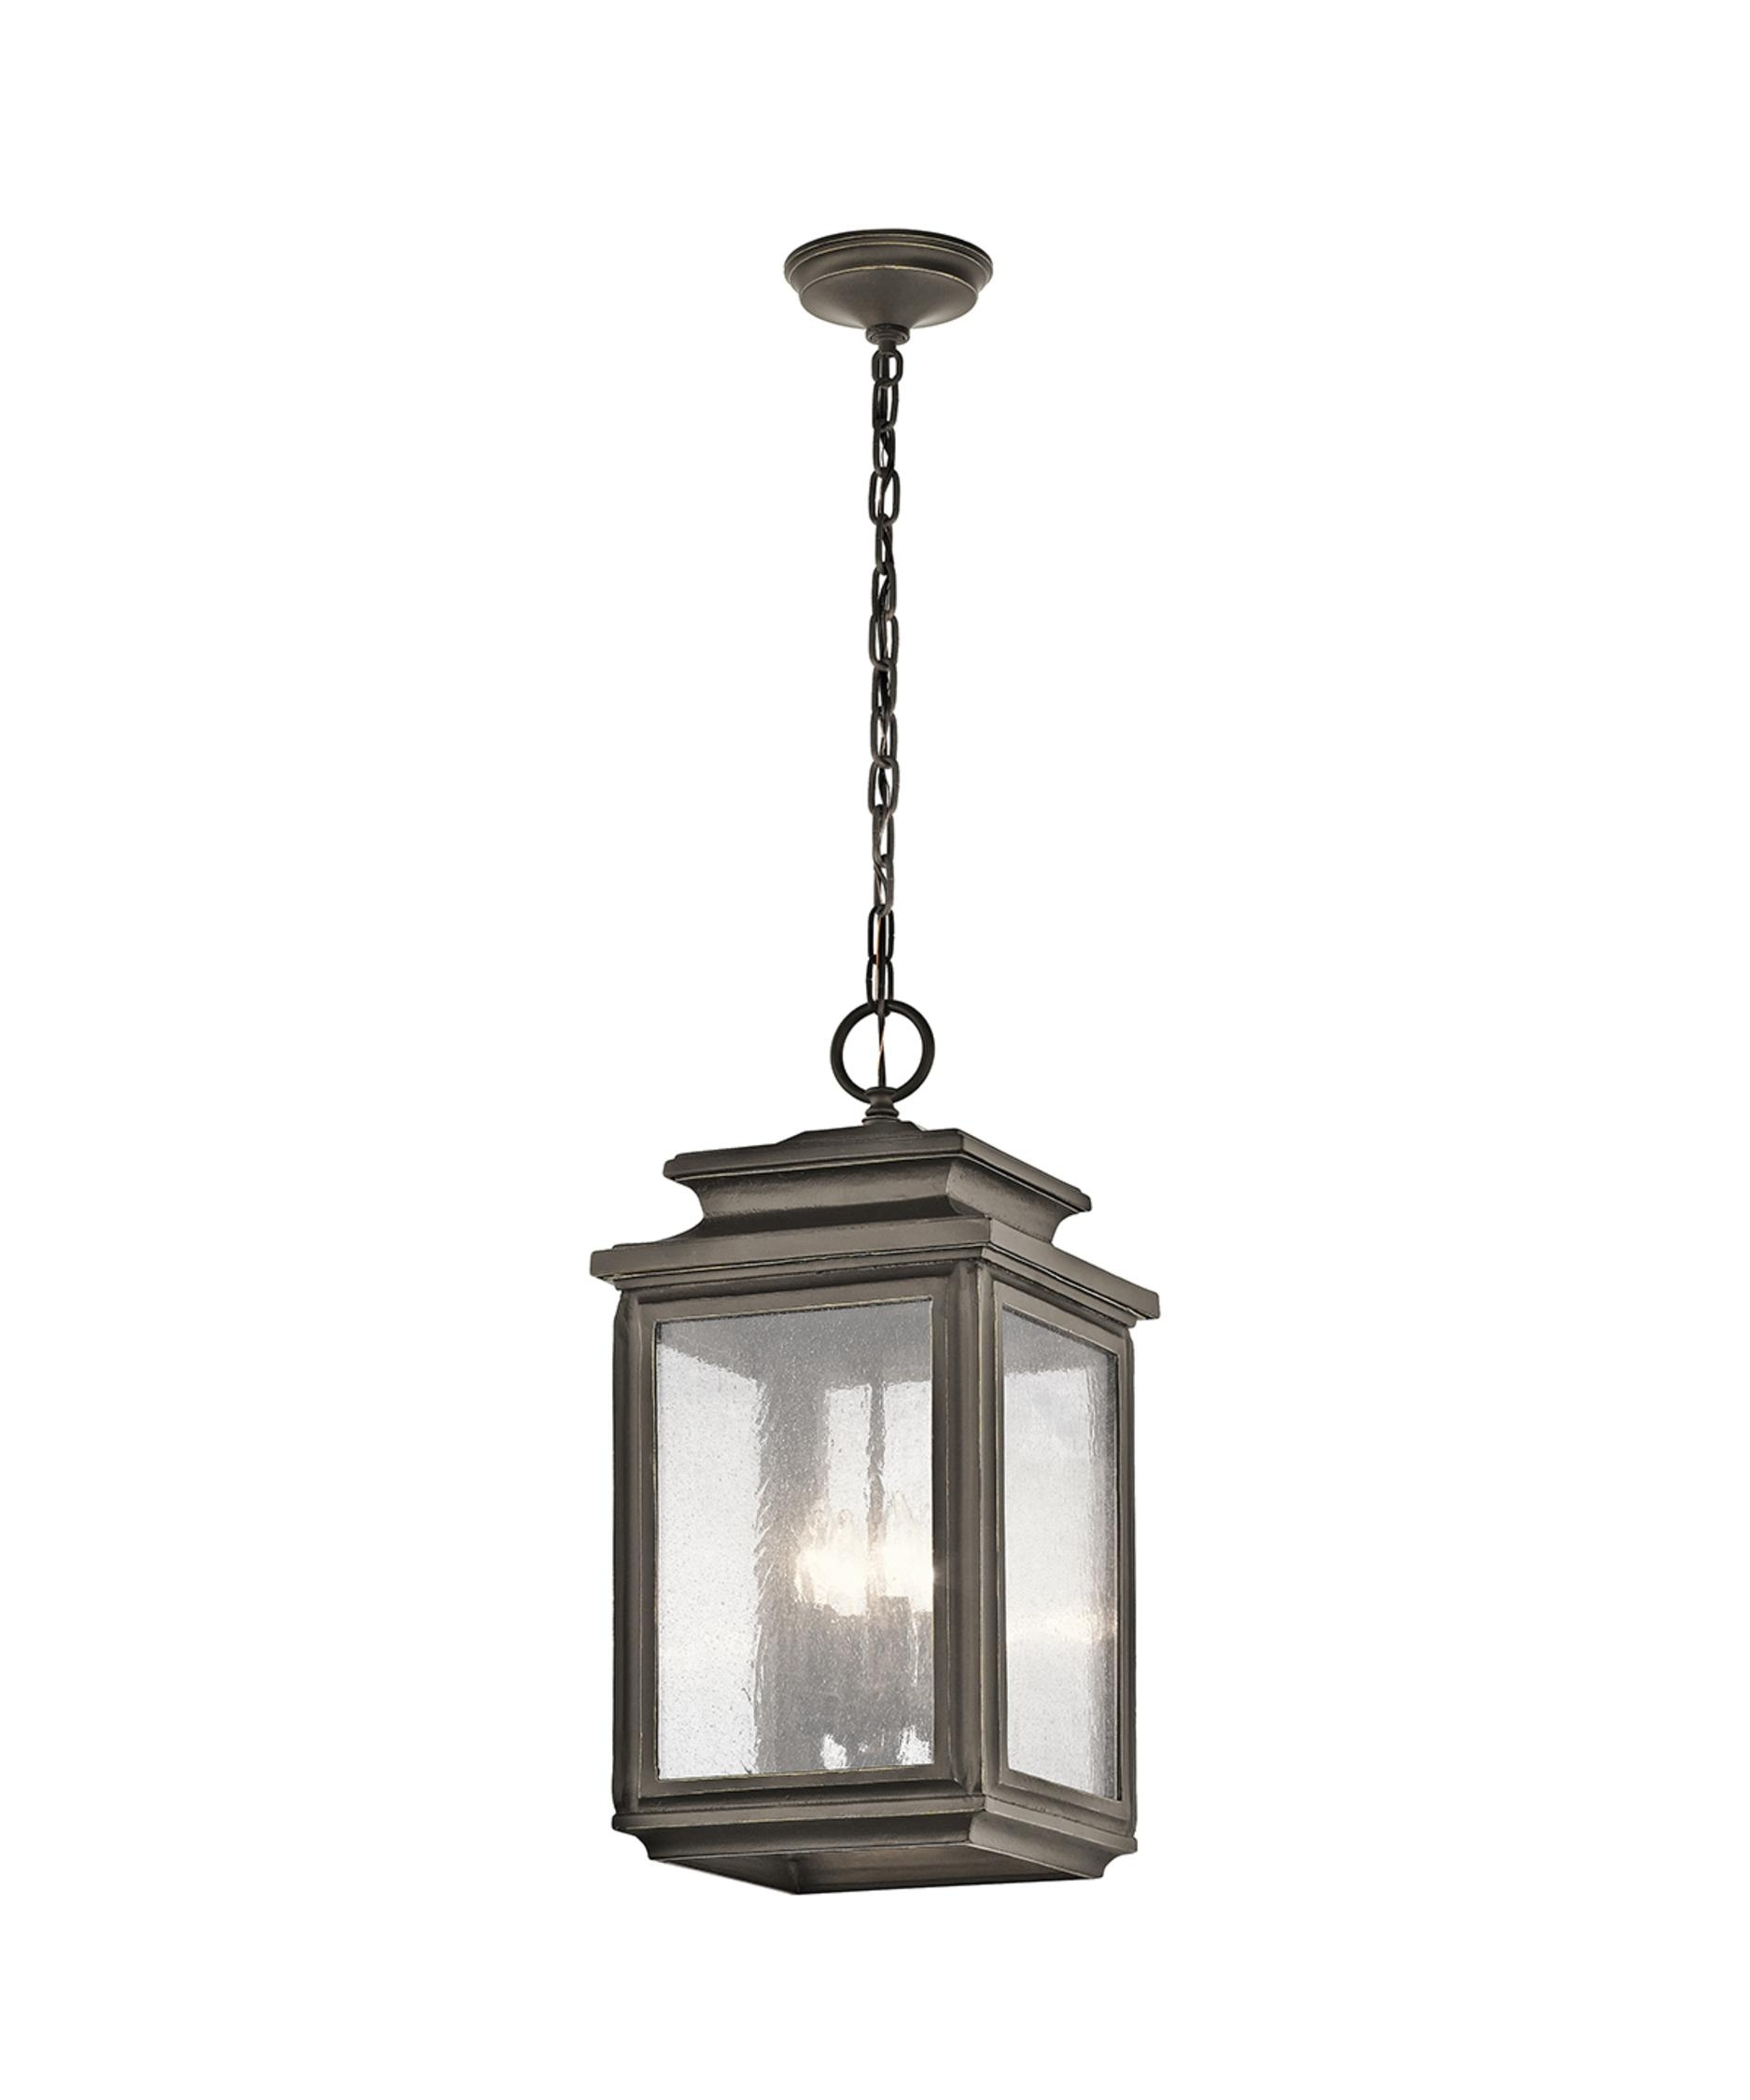 Outdoor Hanging Lanterns With Regard To Widely Used Kichler 49505 Wiscombe Park 11 Inch Wide 4 Light Outdoor Hanging (Gallery 13 of 20)